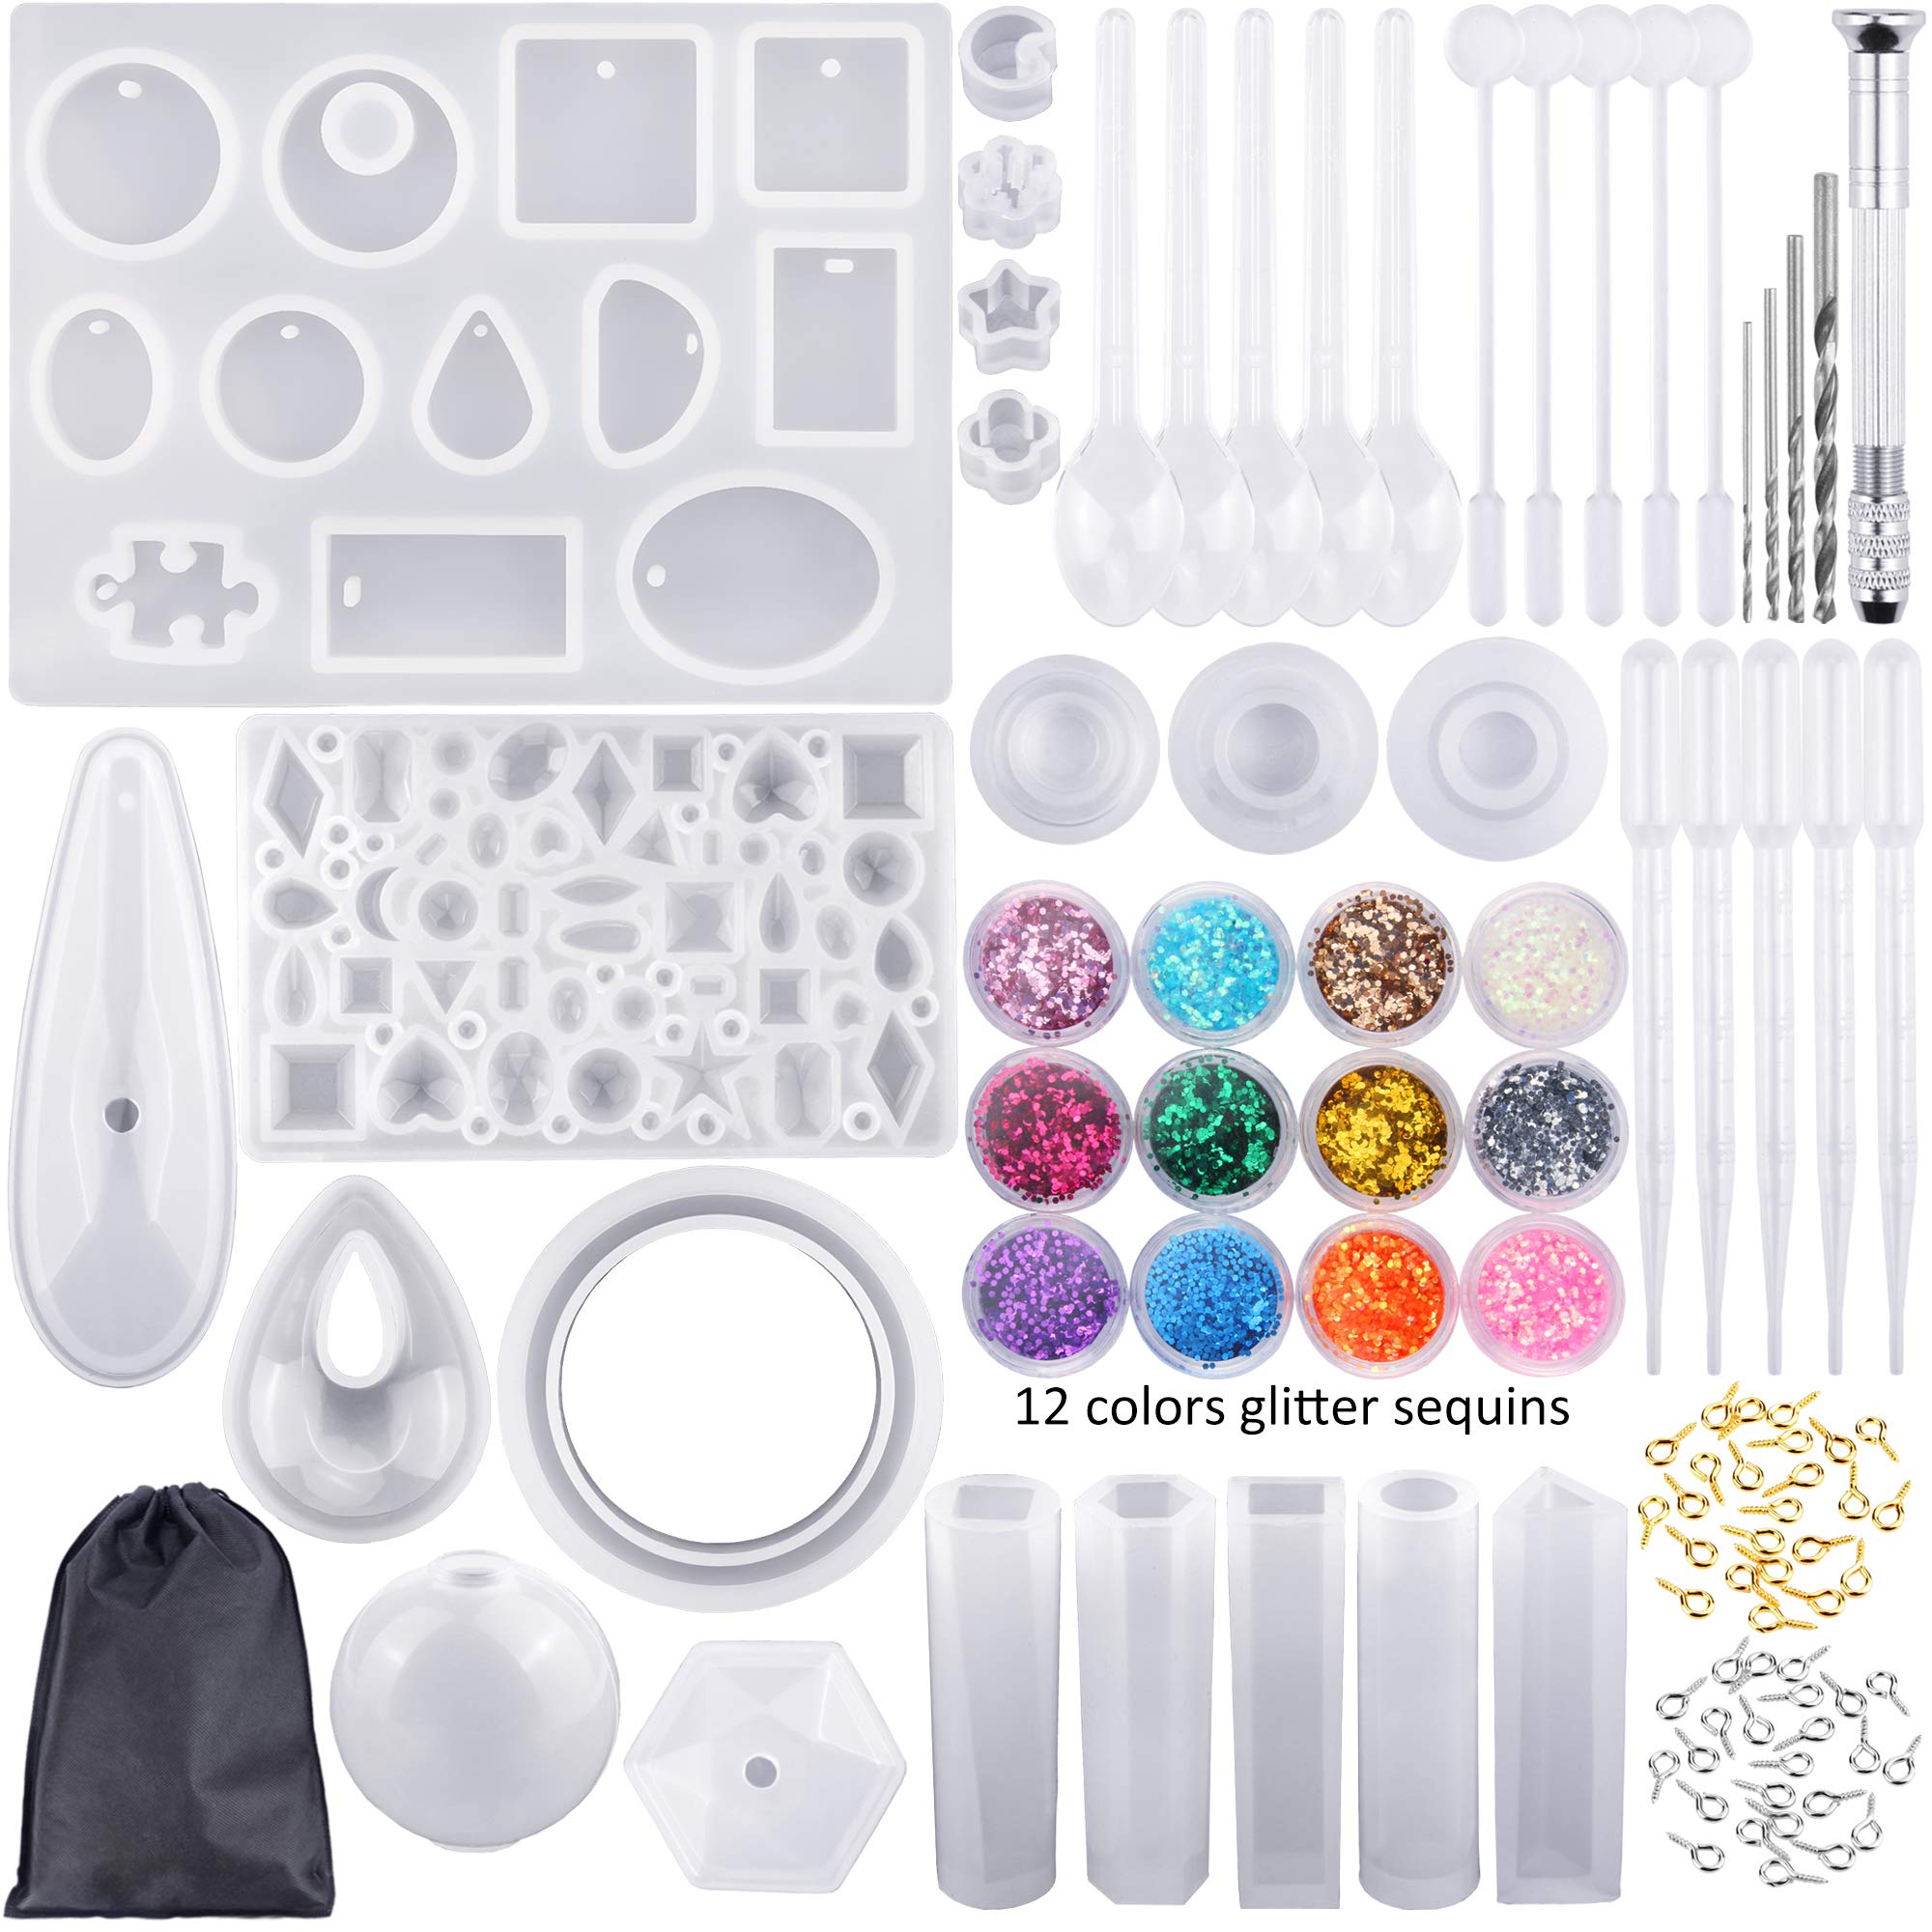 98 Pieces Silicone Casting Molds and Tools Set with a Black Storage Bag for DIY Jewelry Craft Making by Augshy